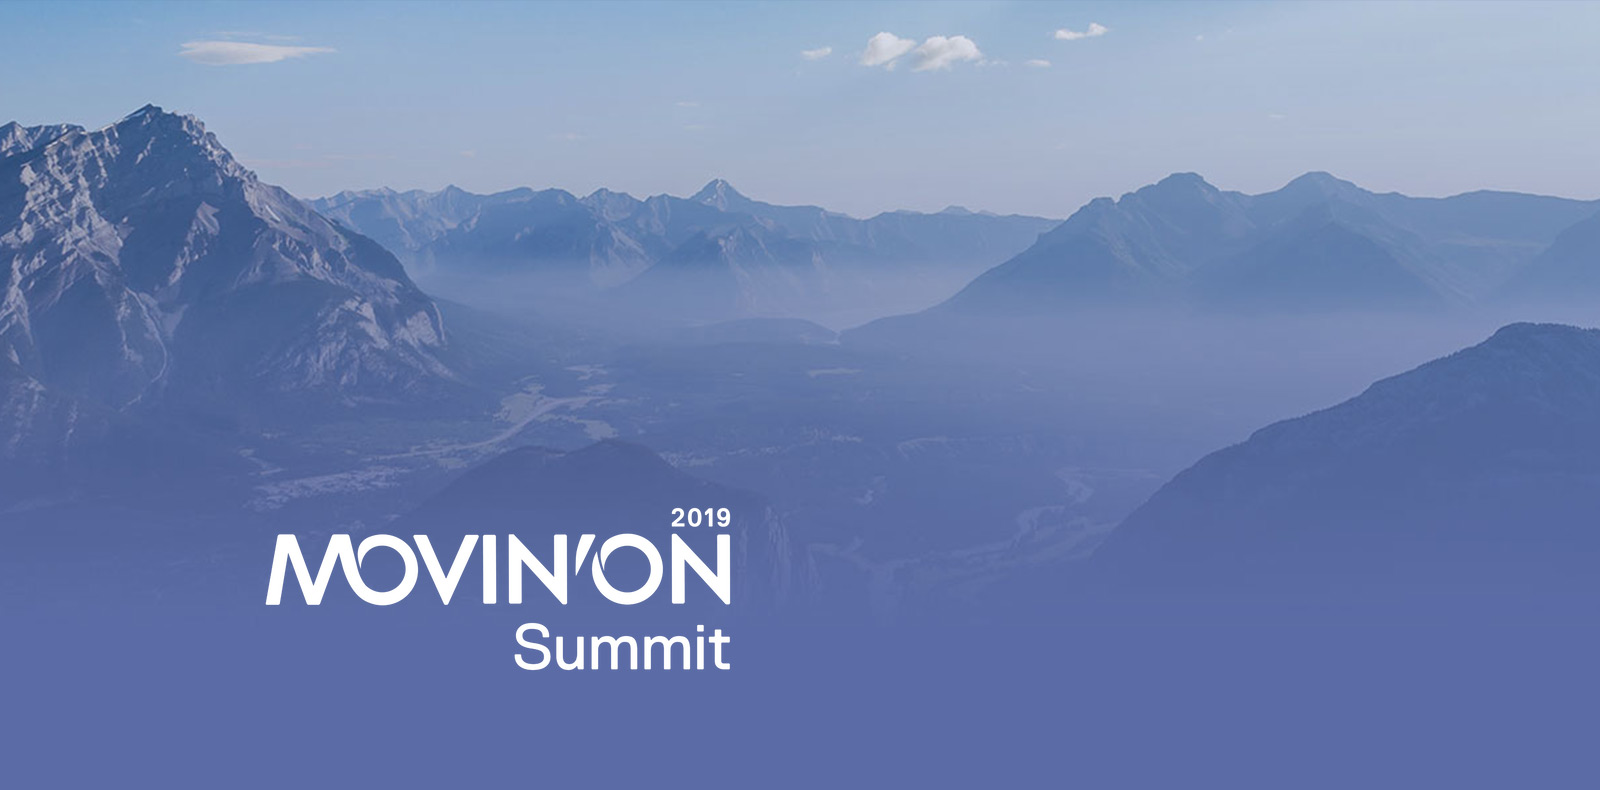 Michelin @Movin'On 2019: the global sustainable mobility summit